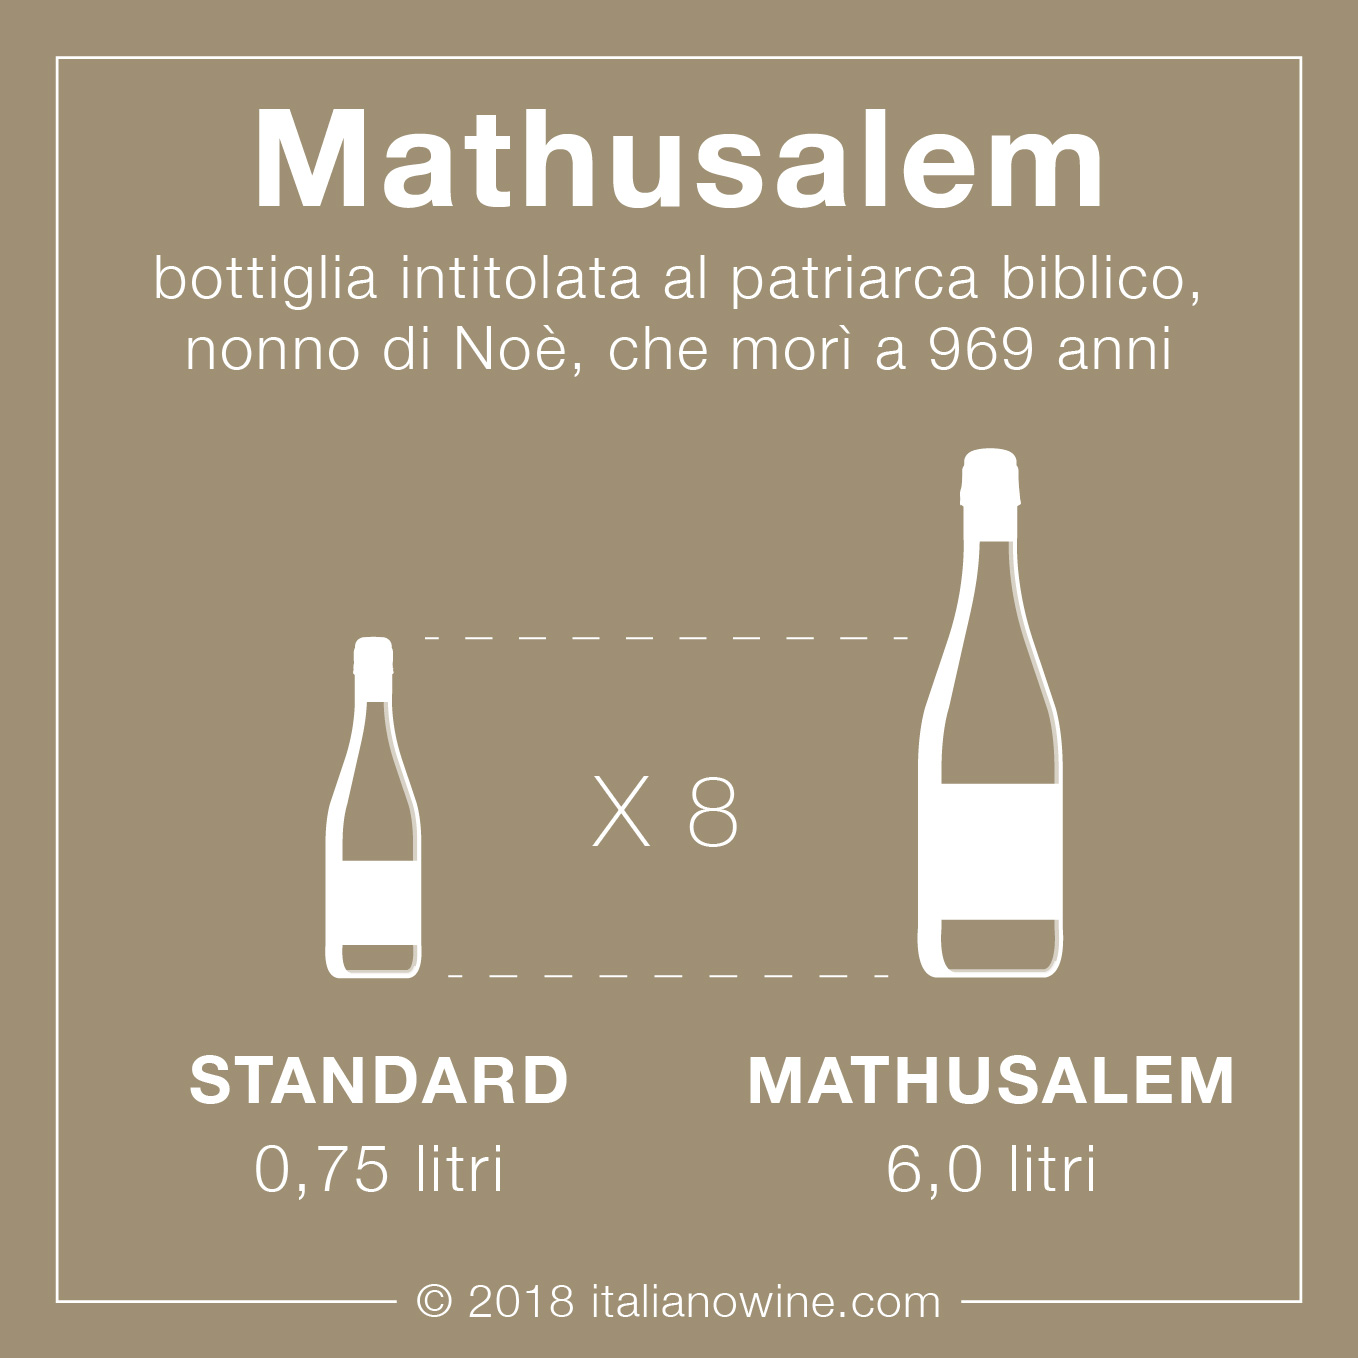 Mathusalem IT